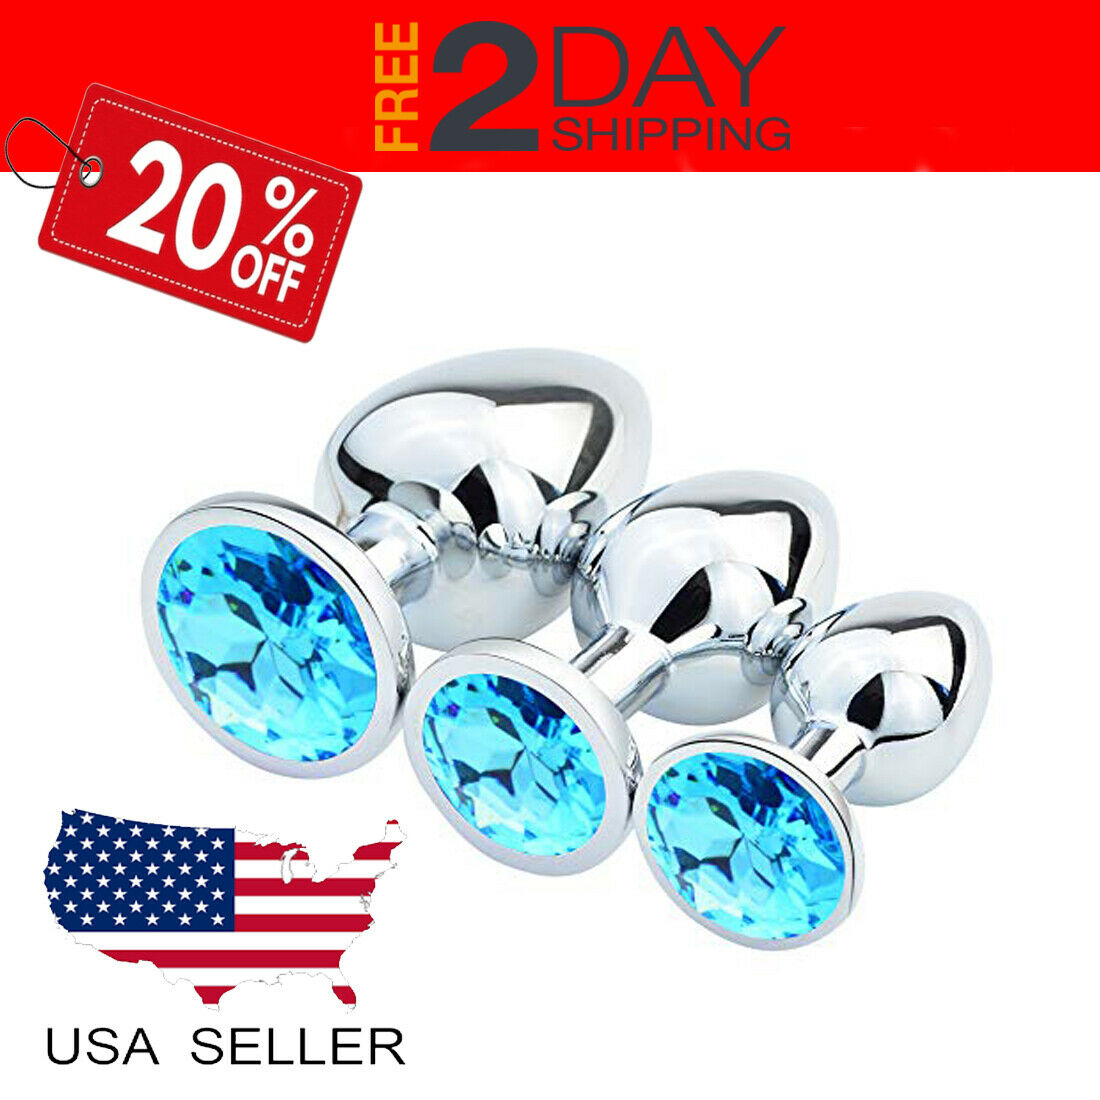 3 Pcs Size Butt Toy Plug Stainless Steel Metal Luxury Jewelr